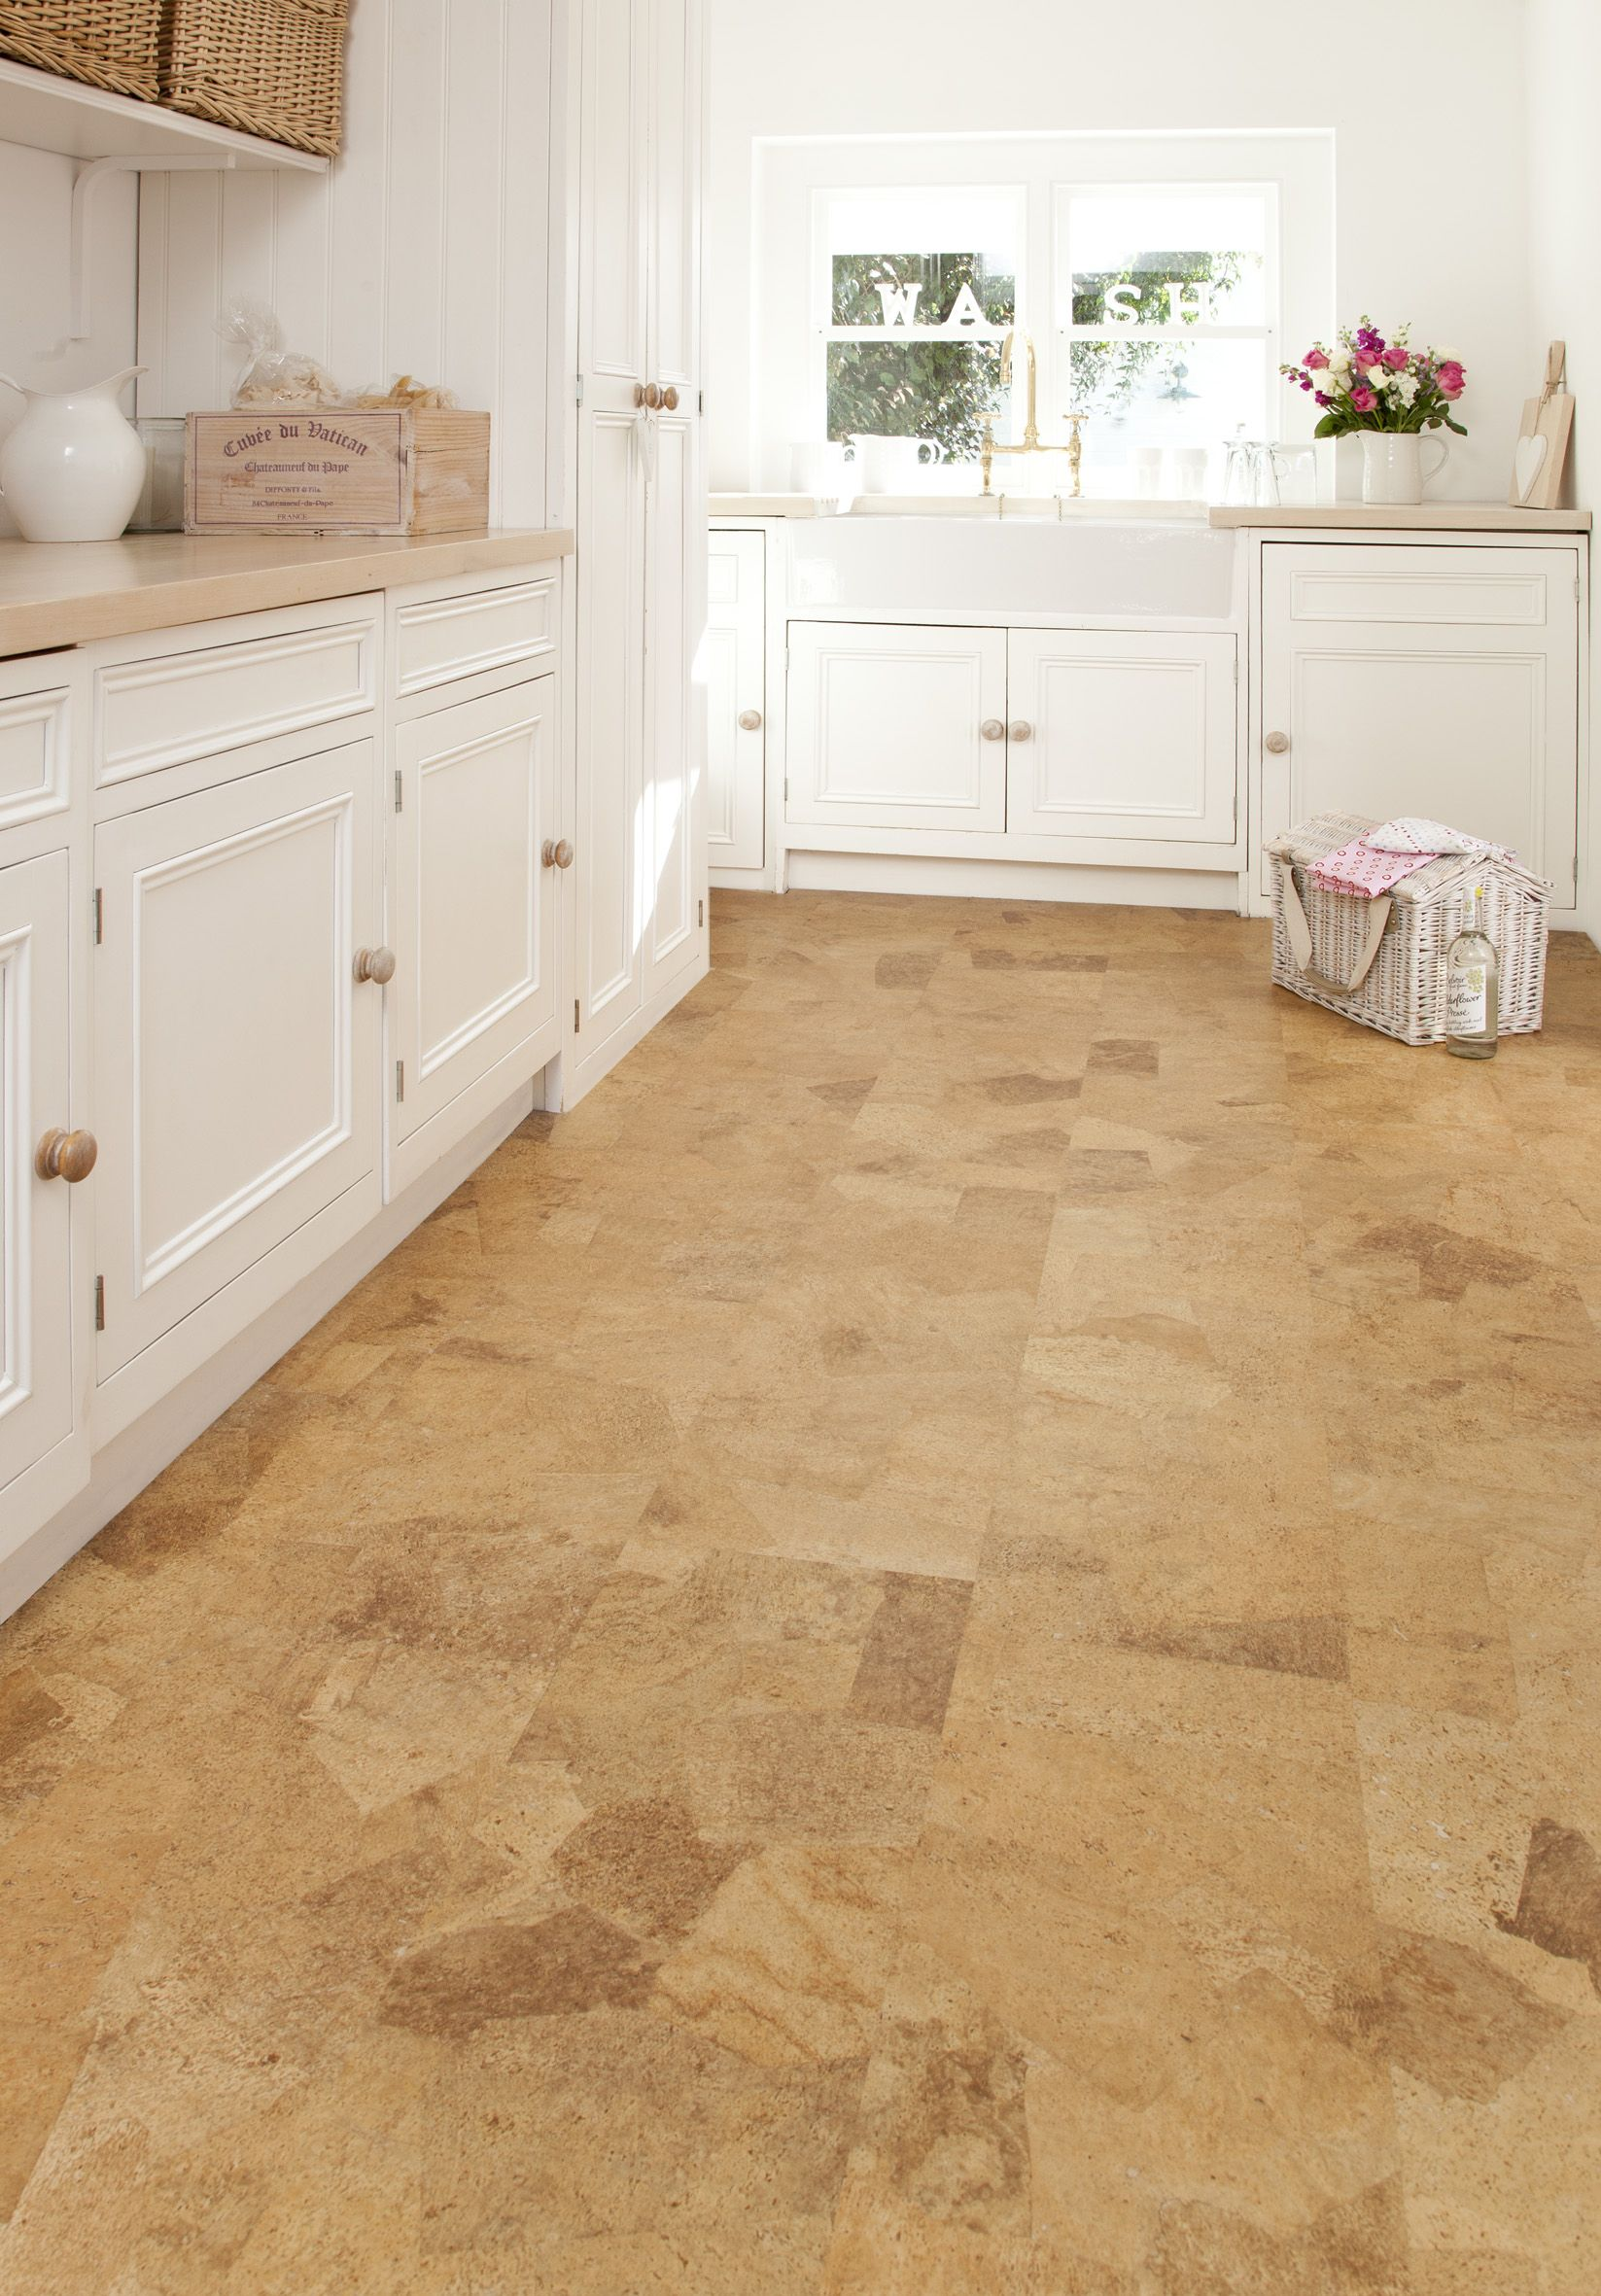 floor tile designs cork flooring kitchen Cork floor kitchen